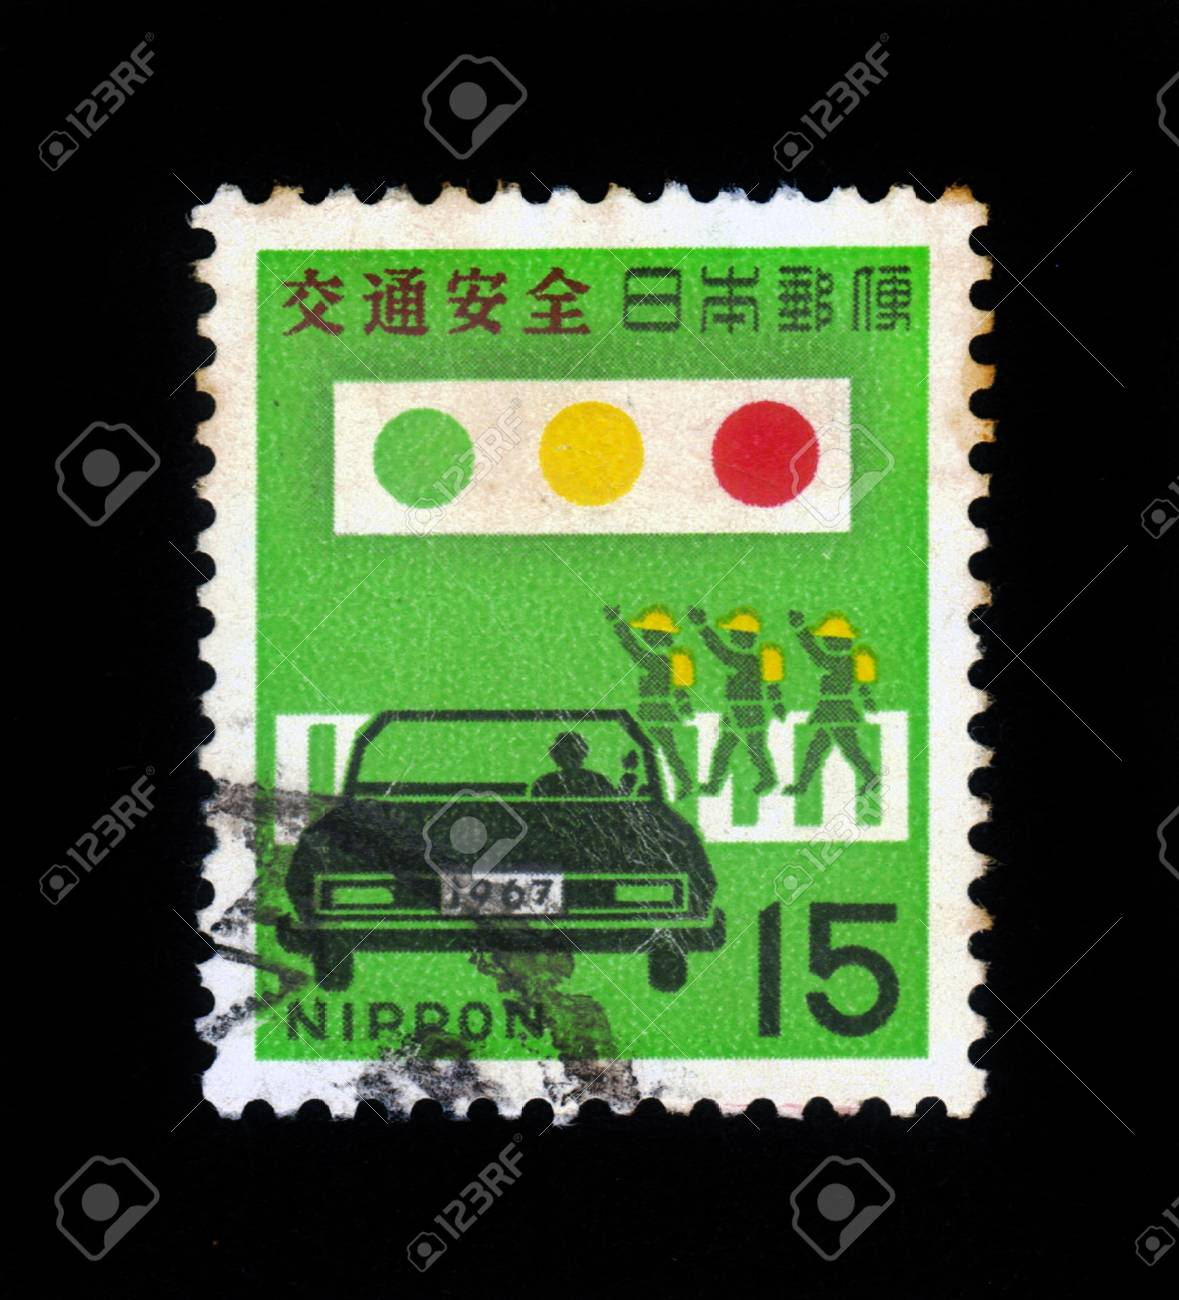 JAPAN - CIRCA 1967  A stamp printed in japan shows symbolic image of car, traffic light and people on a pedestrian crossing, road safety, circa 1967 Stock Photo - 19598745